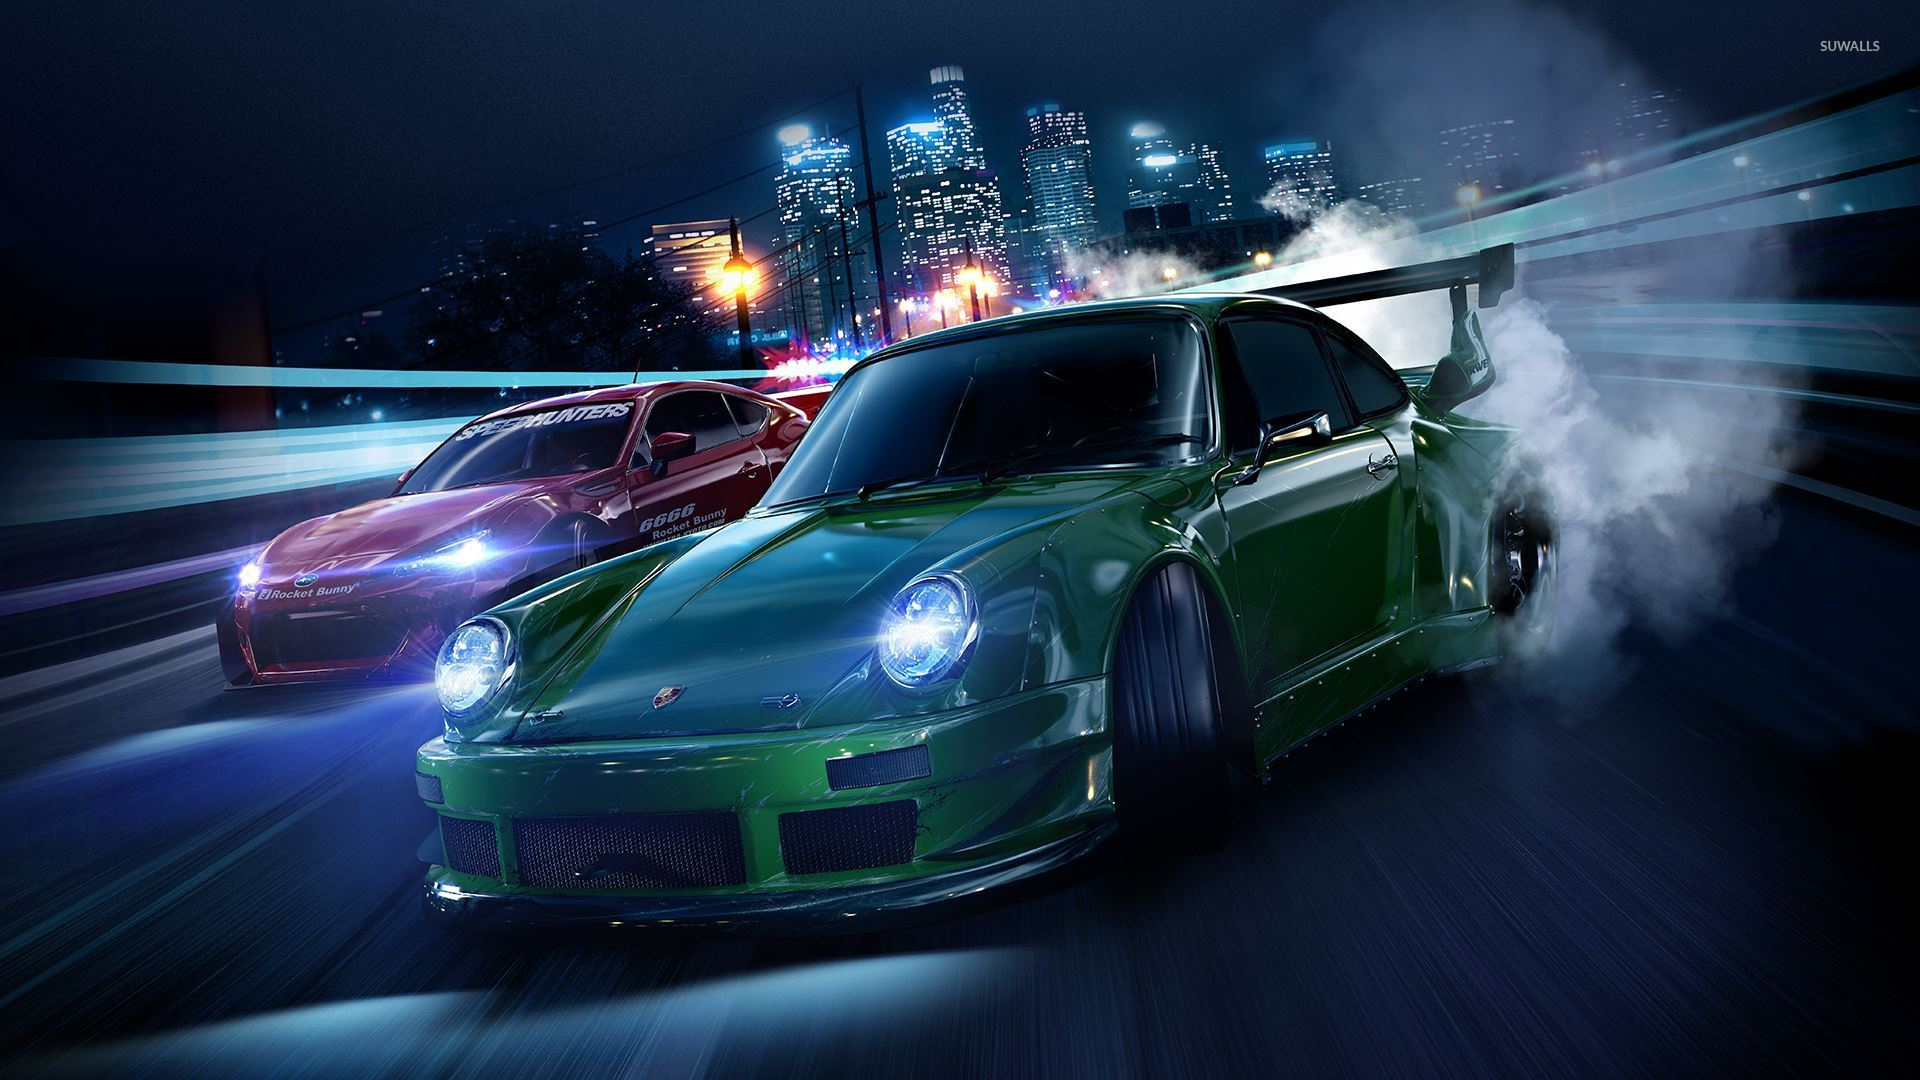 Need for Speed [2] wallpaper - Game wallpapers - #43676